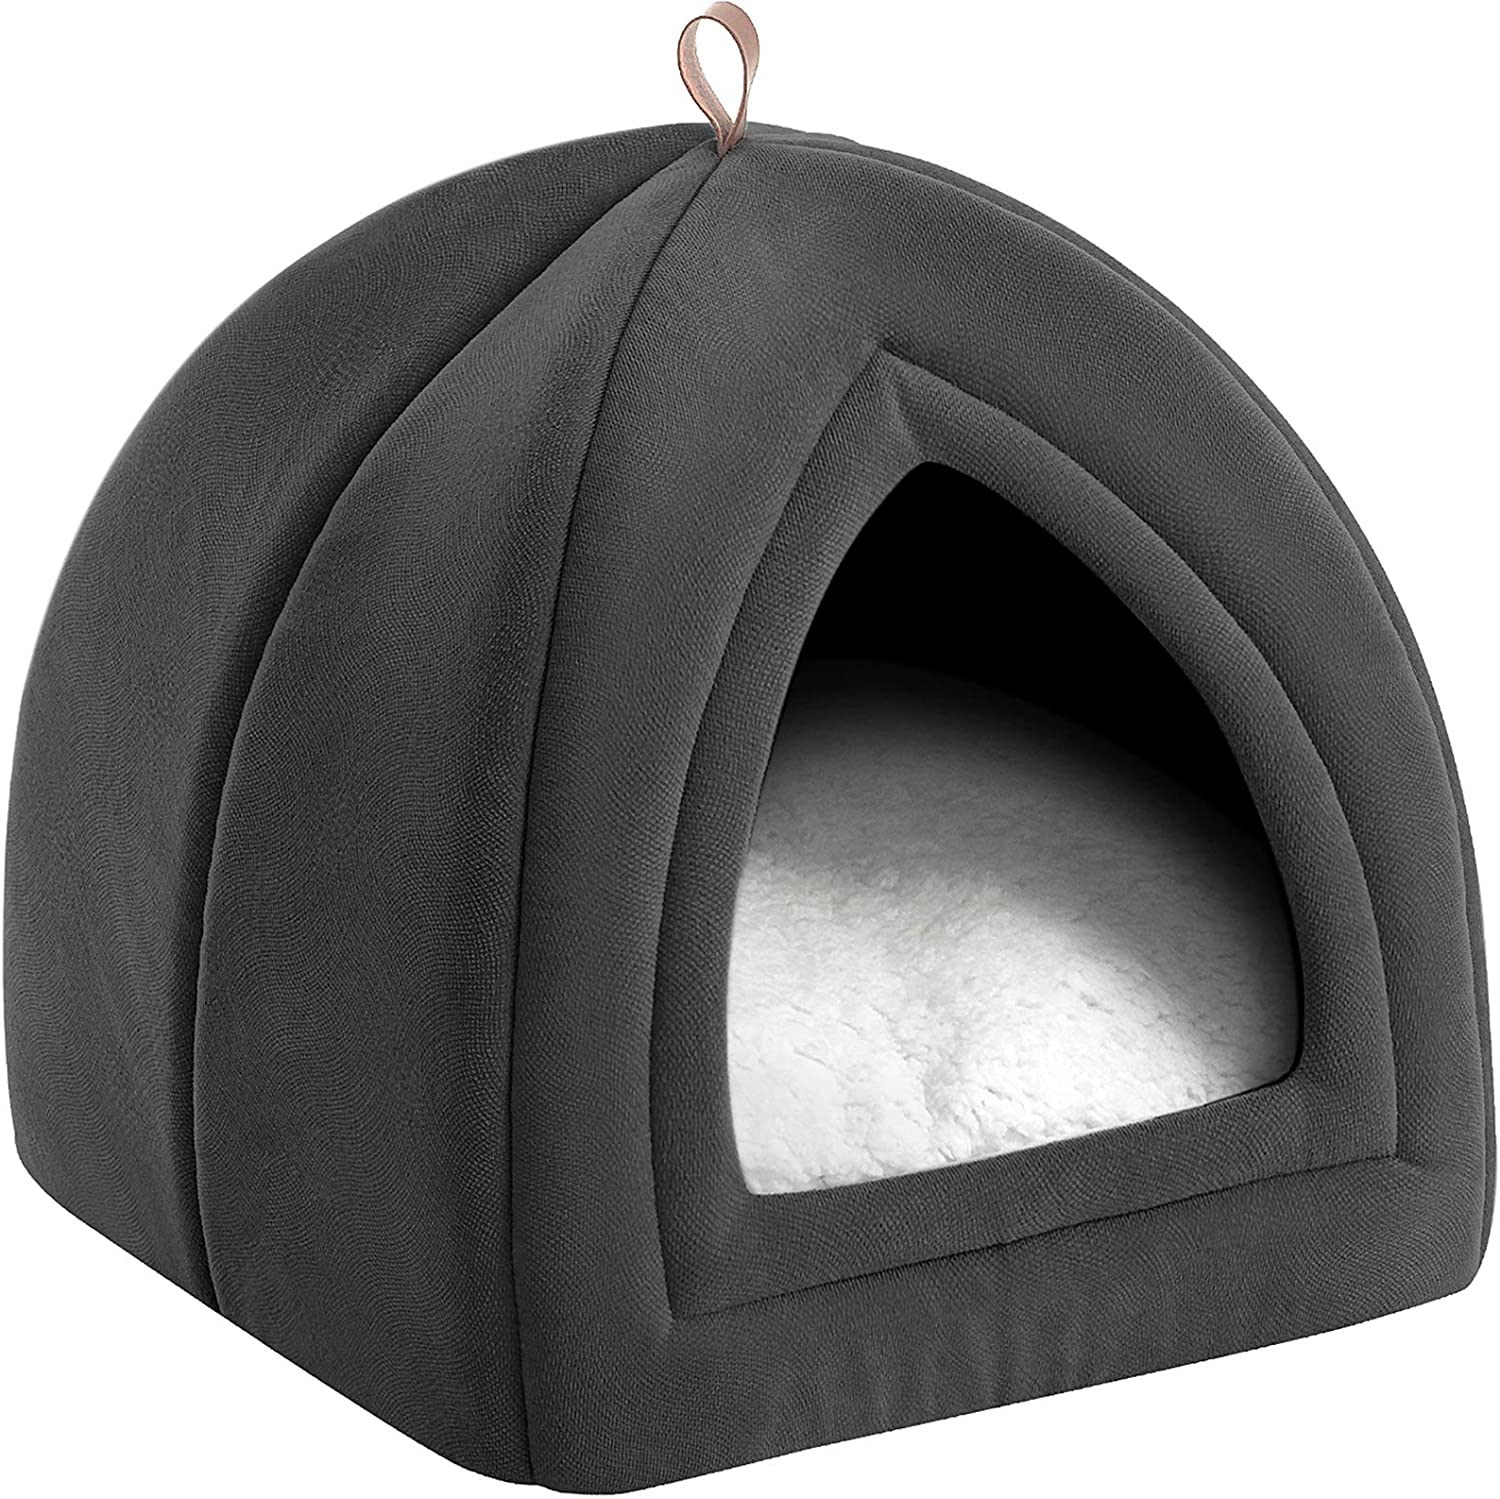 Bedsure Cat Bed For Indoor Cats Cat House Cat Tent Cat Cave With Removable Washable Cushioned Pillow Kitten Beds Cat Hut Small Dog Bed Dark Grey 15 Inches